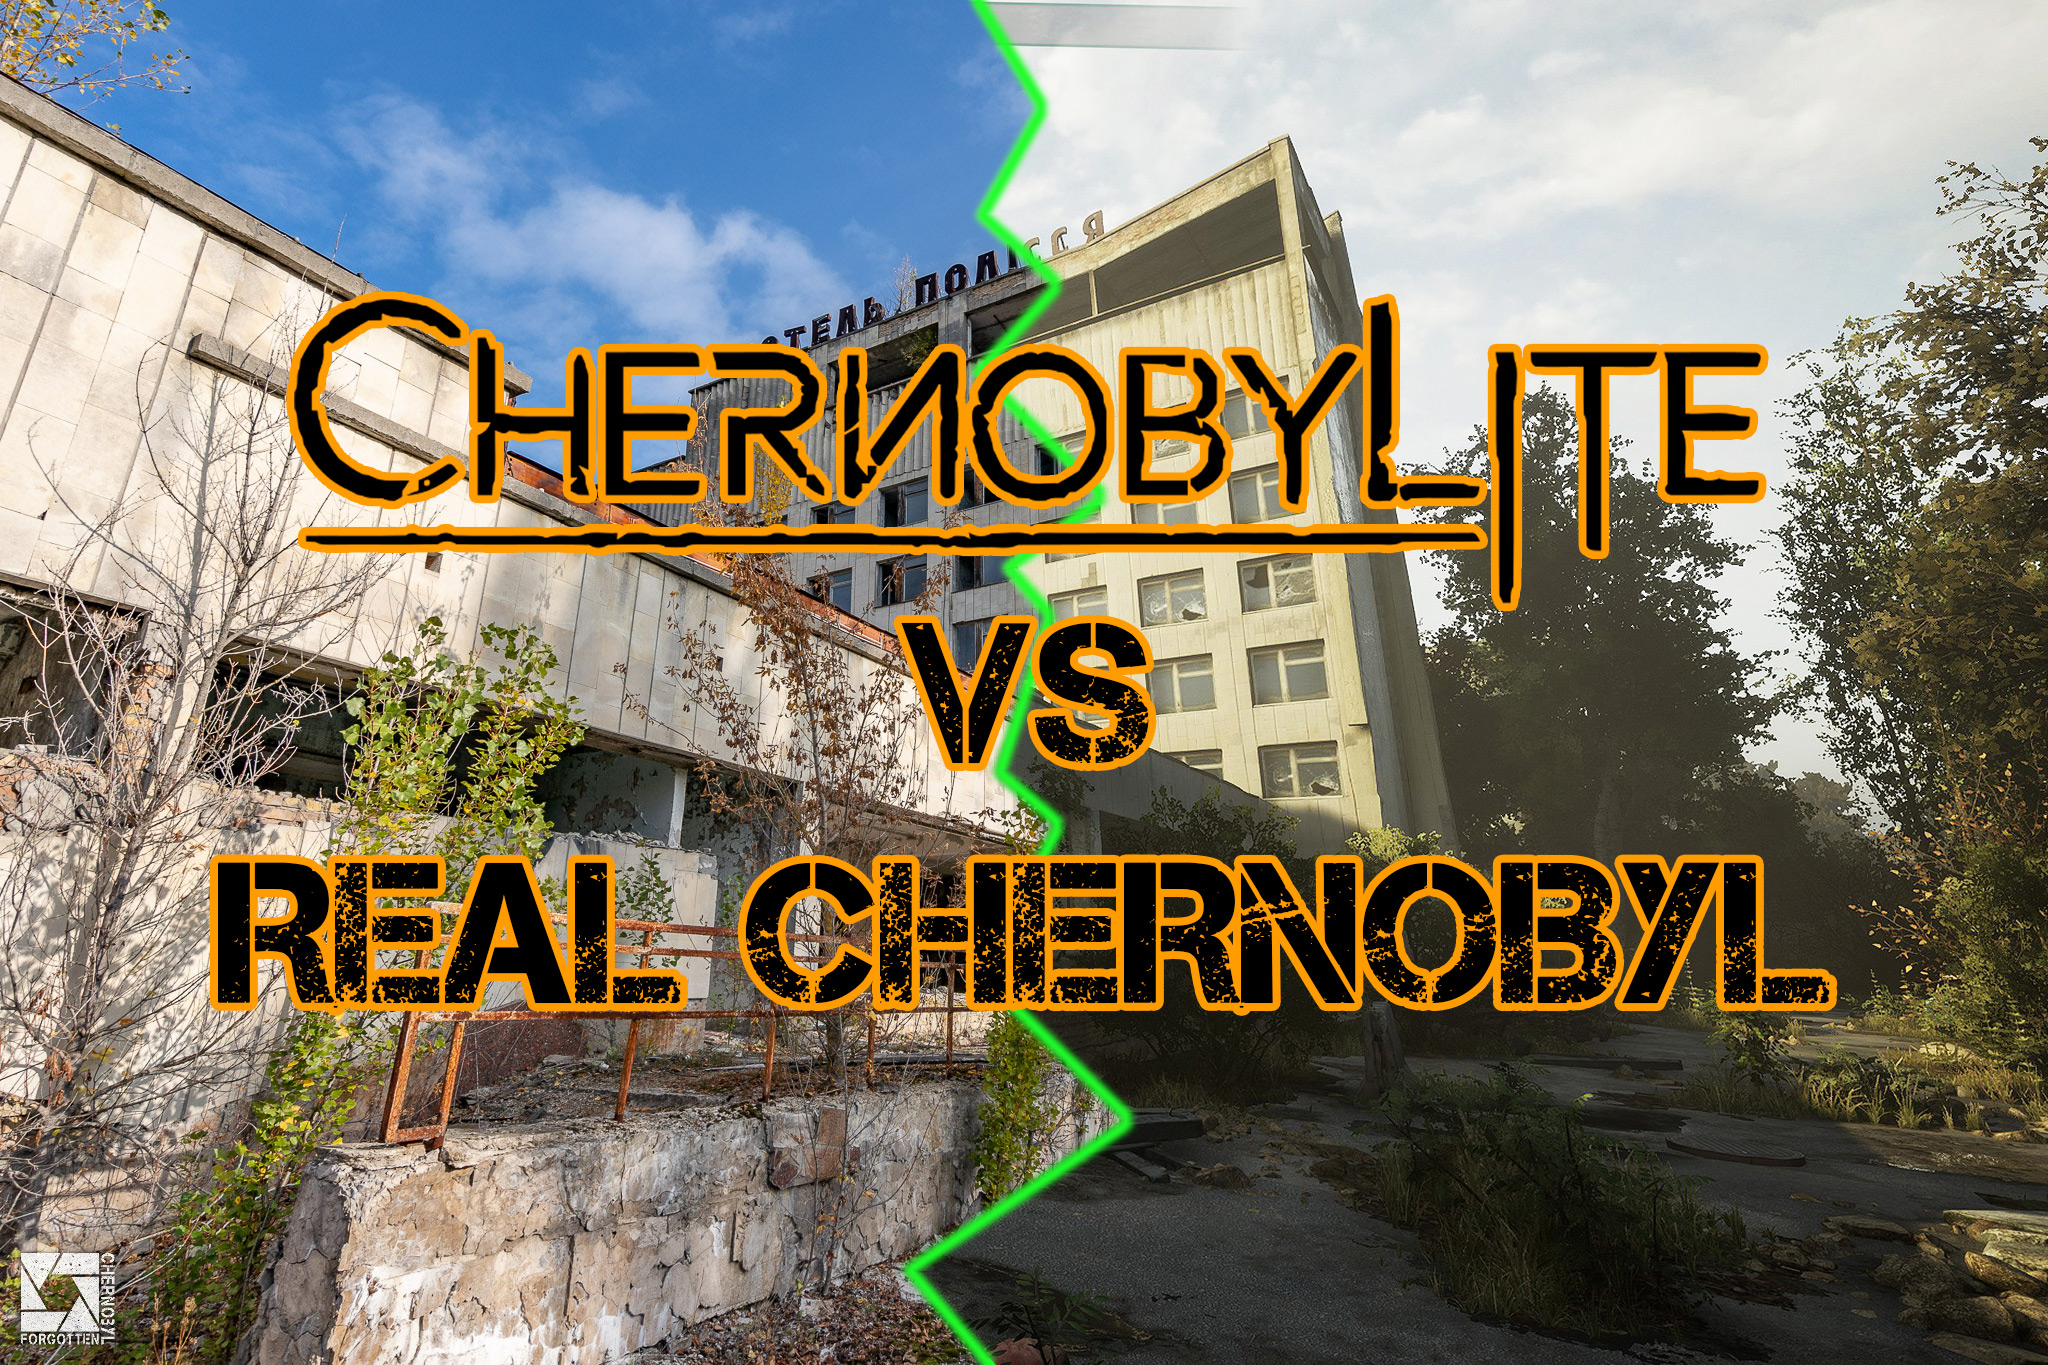 Comparing Chernobylite game to real world Chernobyl